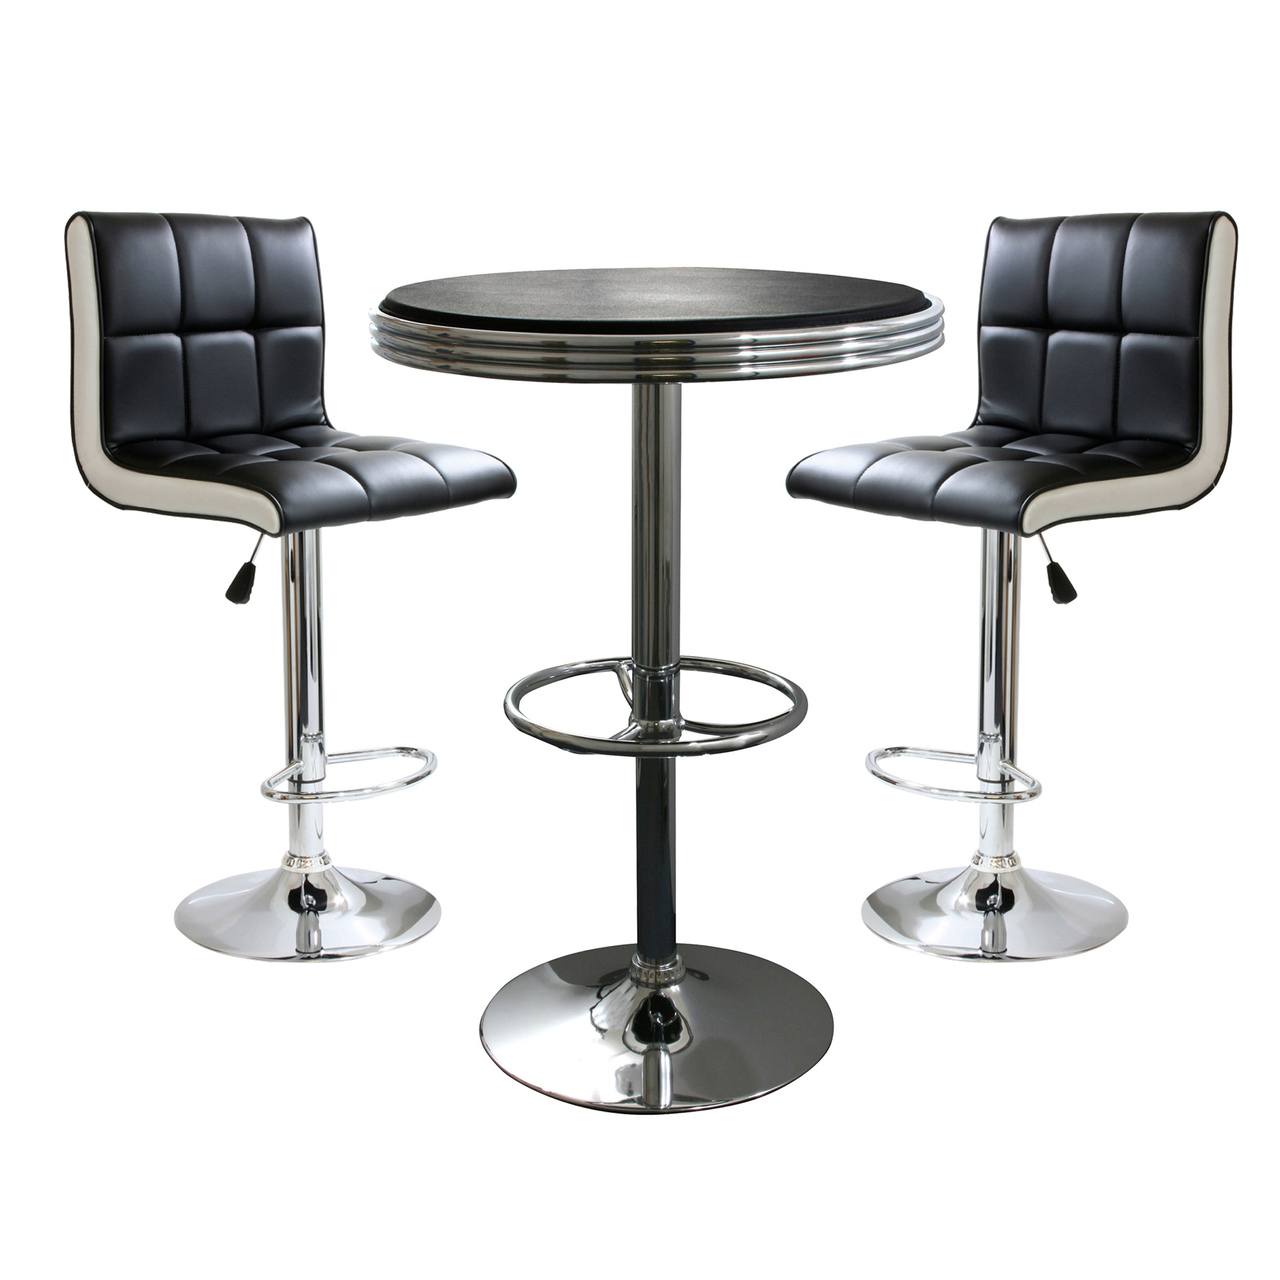 AmeriHome BSSET19 3 Piece Contemporary Two Tone Bar Set